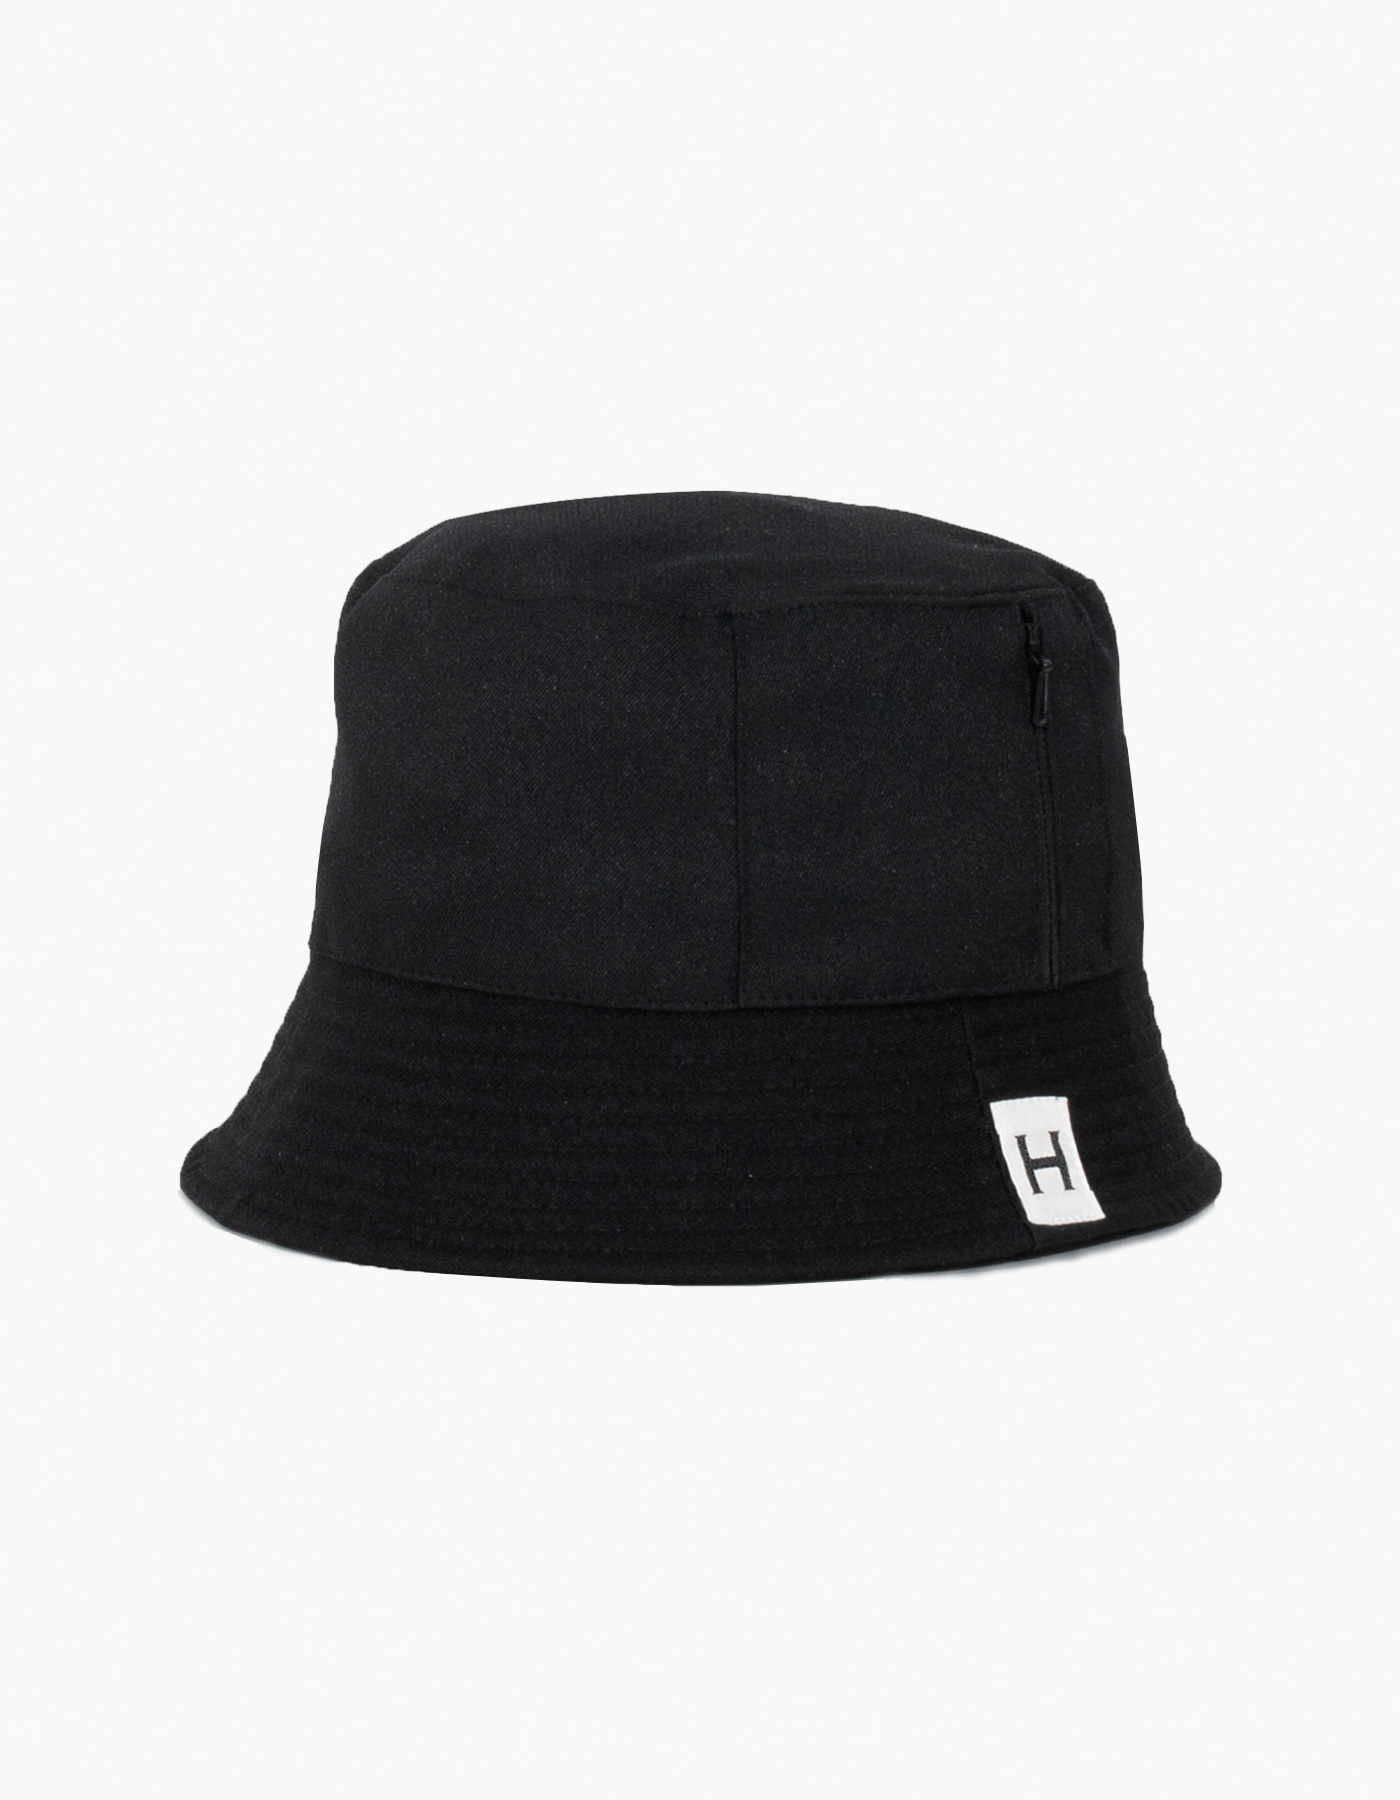 851 BUCKET HAT / BLACK